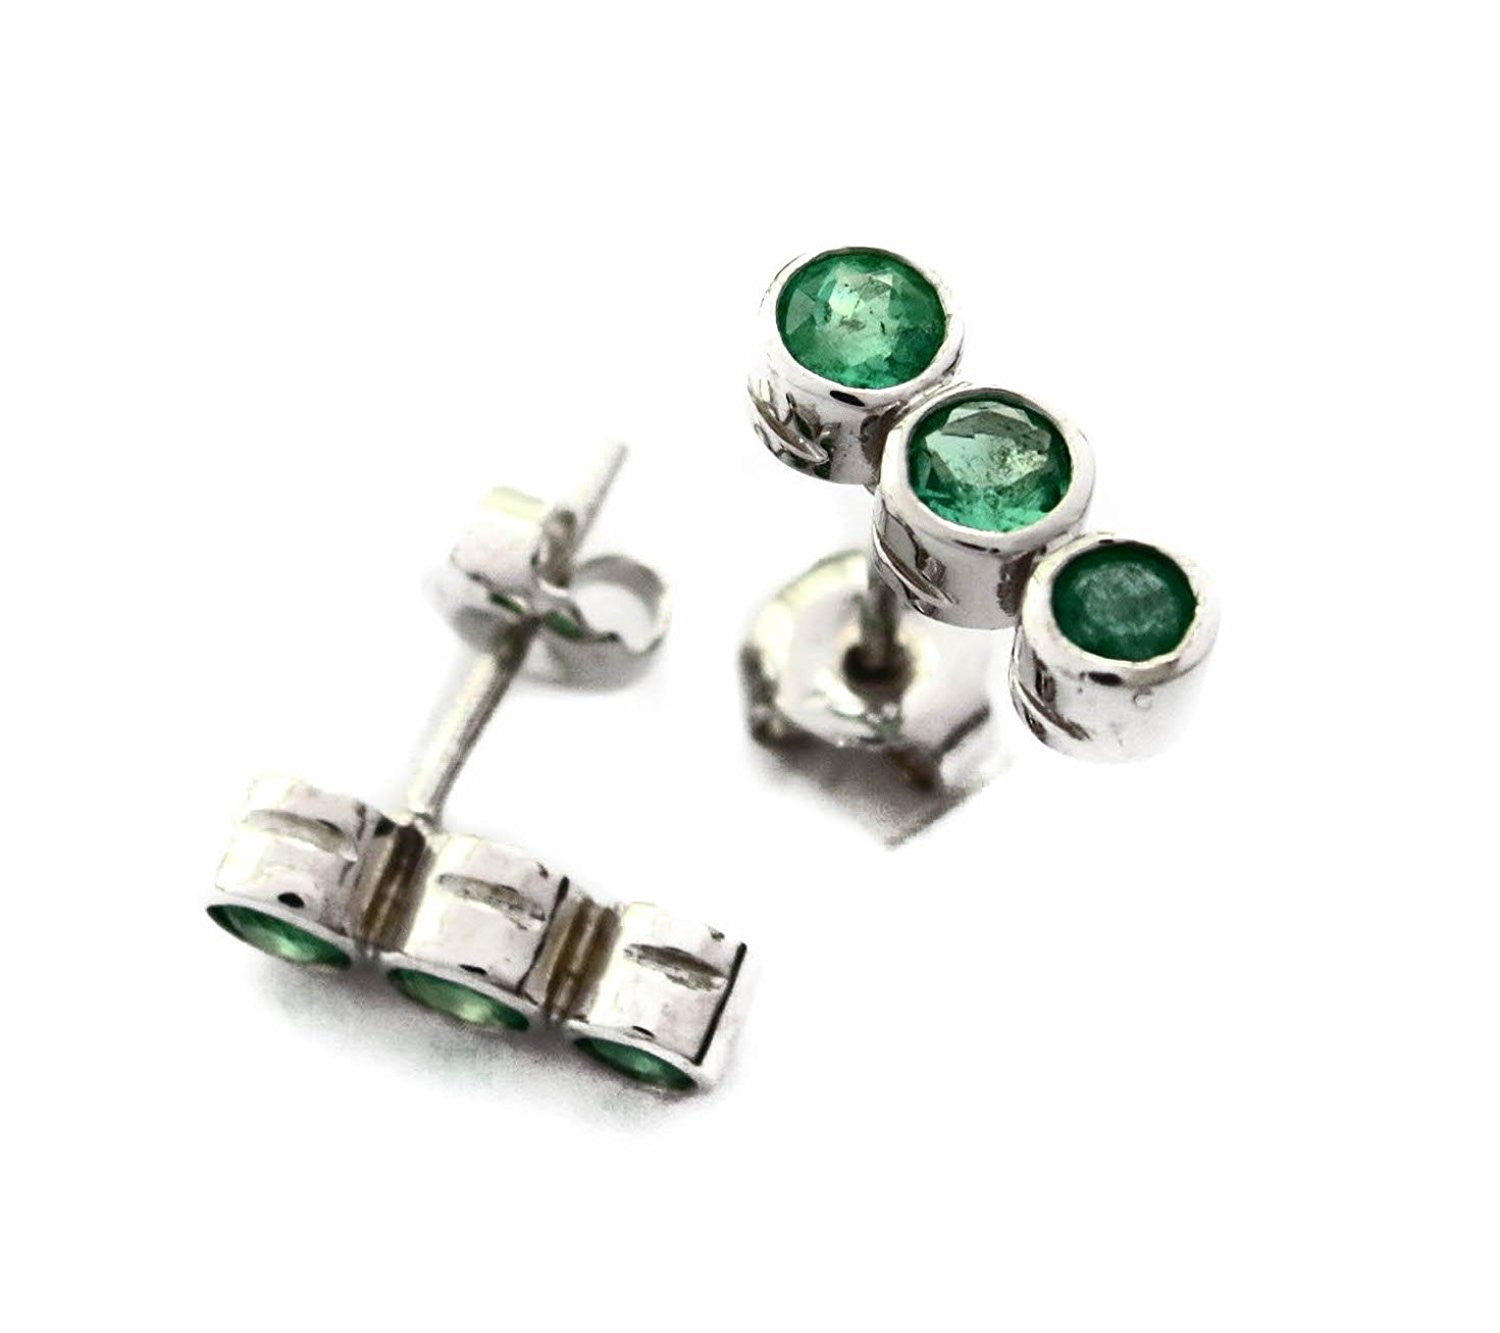 canada finley coins natural ladies premier diamond and earrings s trade img company gold jewellery emerald estate